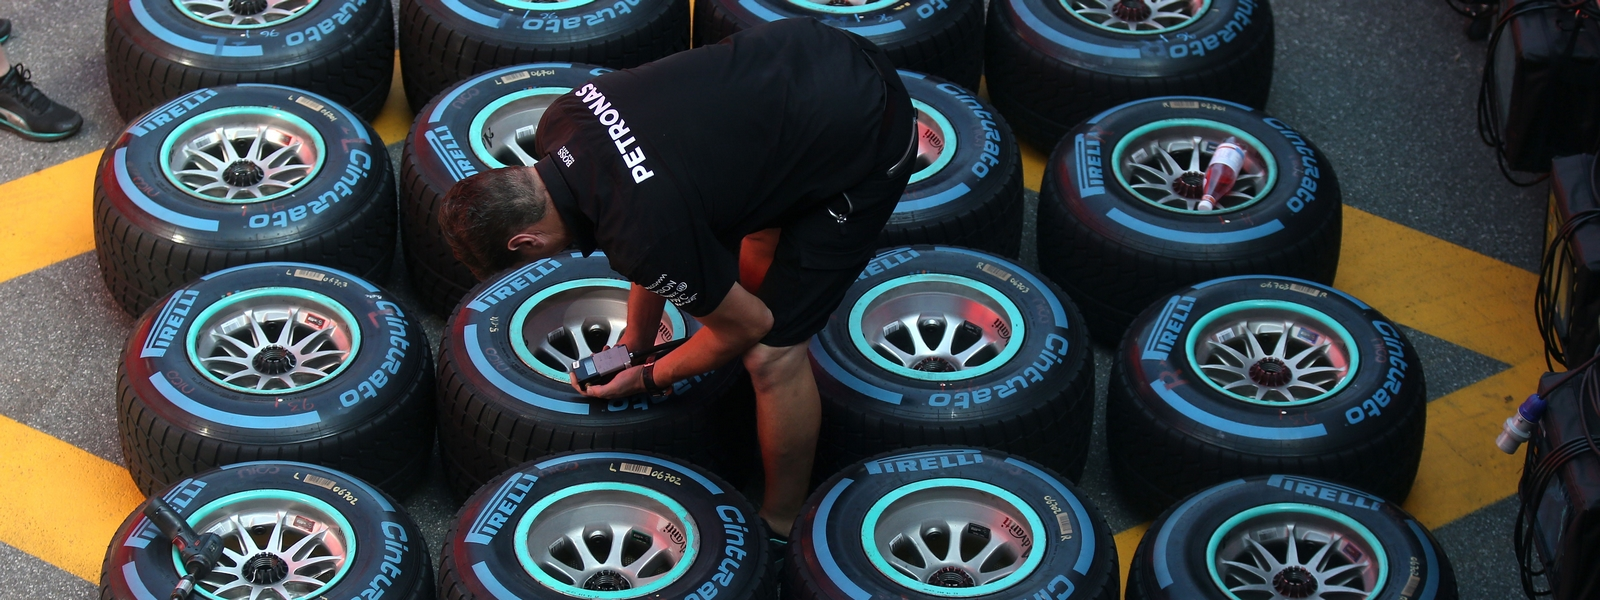 Motorsports: FIA Formula One World Championship 2016, Grand Prix of Italy,  Pirelli, tire, tires, tyre, tyres, wheel, wheels, Reifen, Rad, feature *** Local Caption *** +++ www.hoch-zwei.net +++ copyright: HOCH ZWEI +++